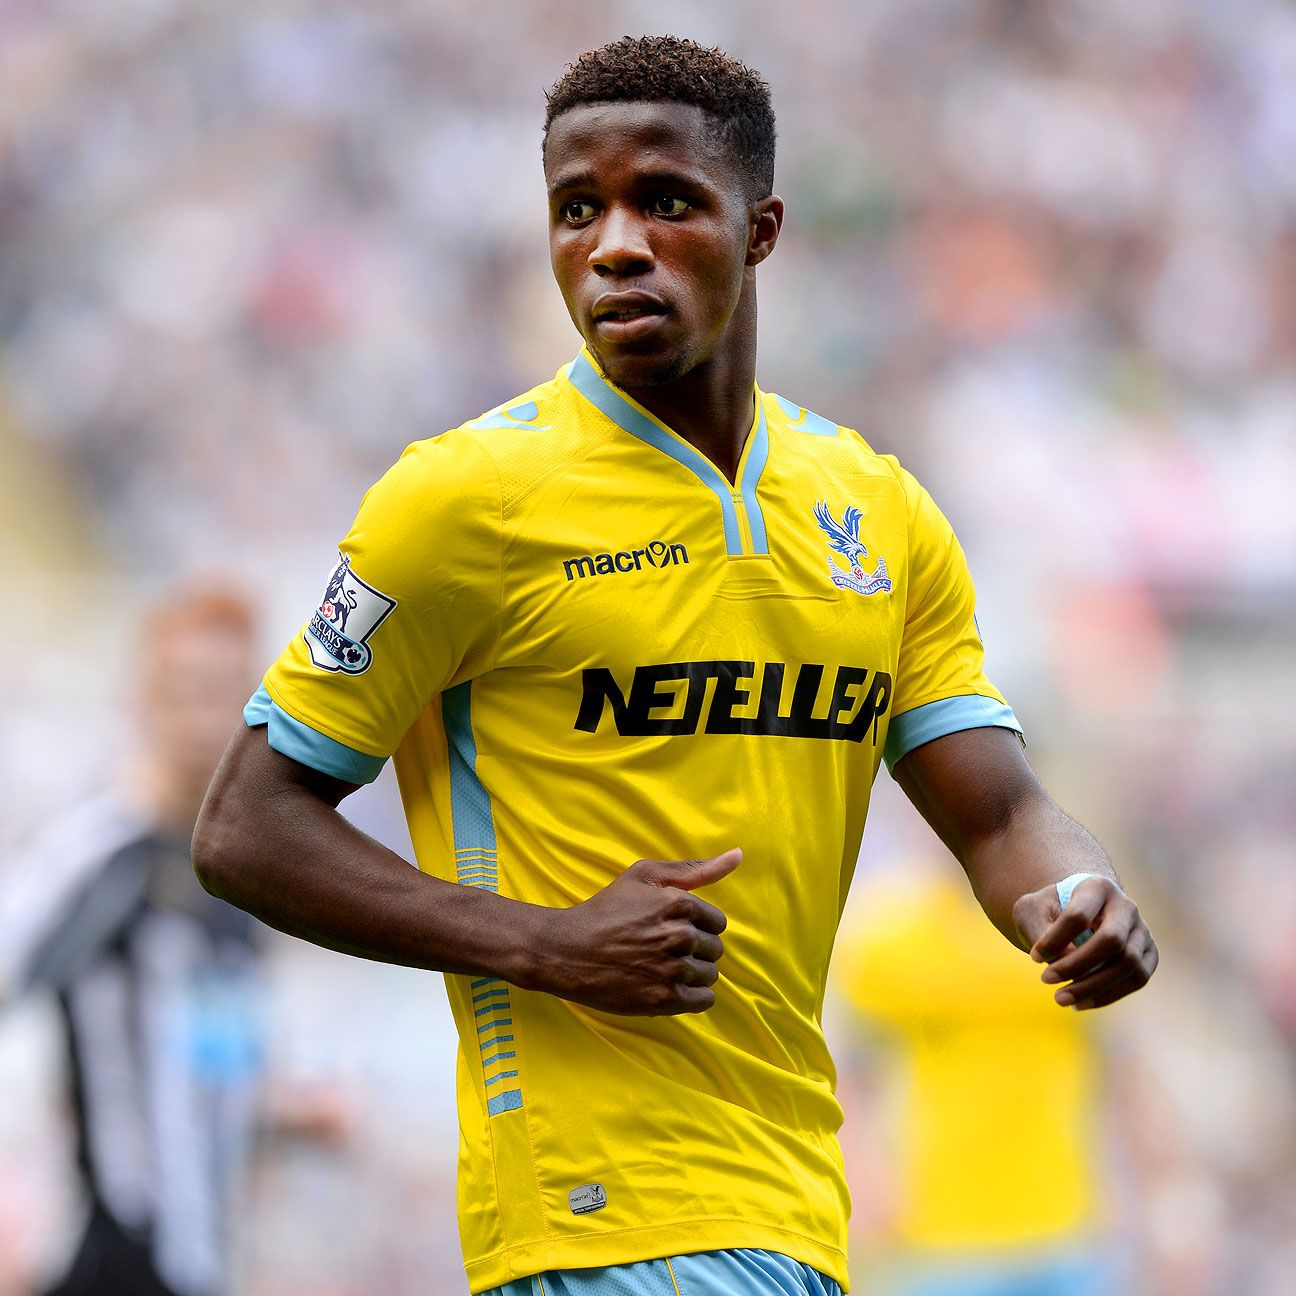 Wilfried Zaha is back at Crystal Palace where he helped the Eagles get promoted from the Championship in 2012-13.